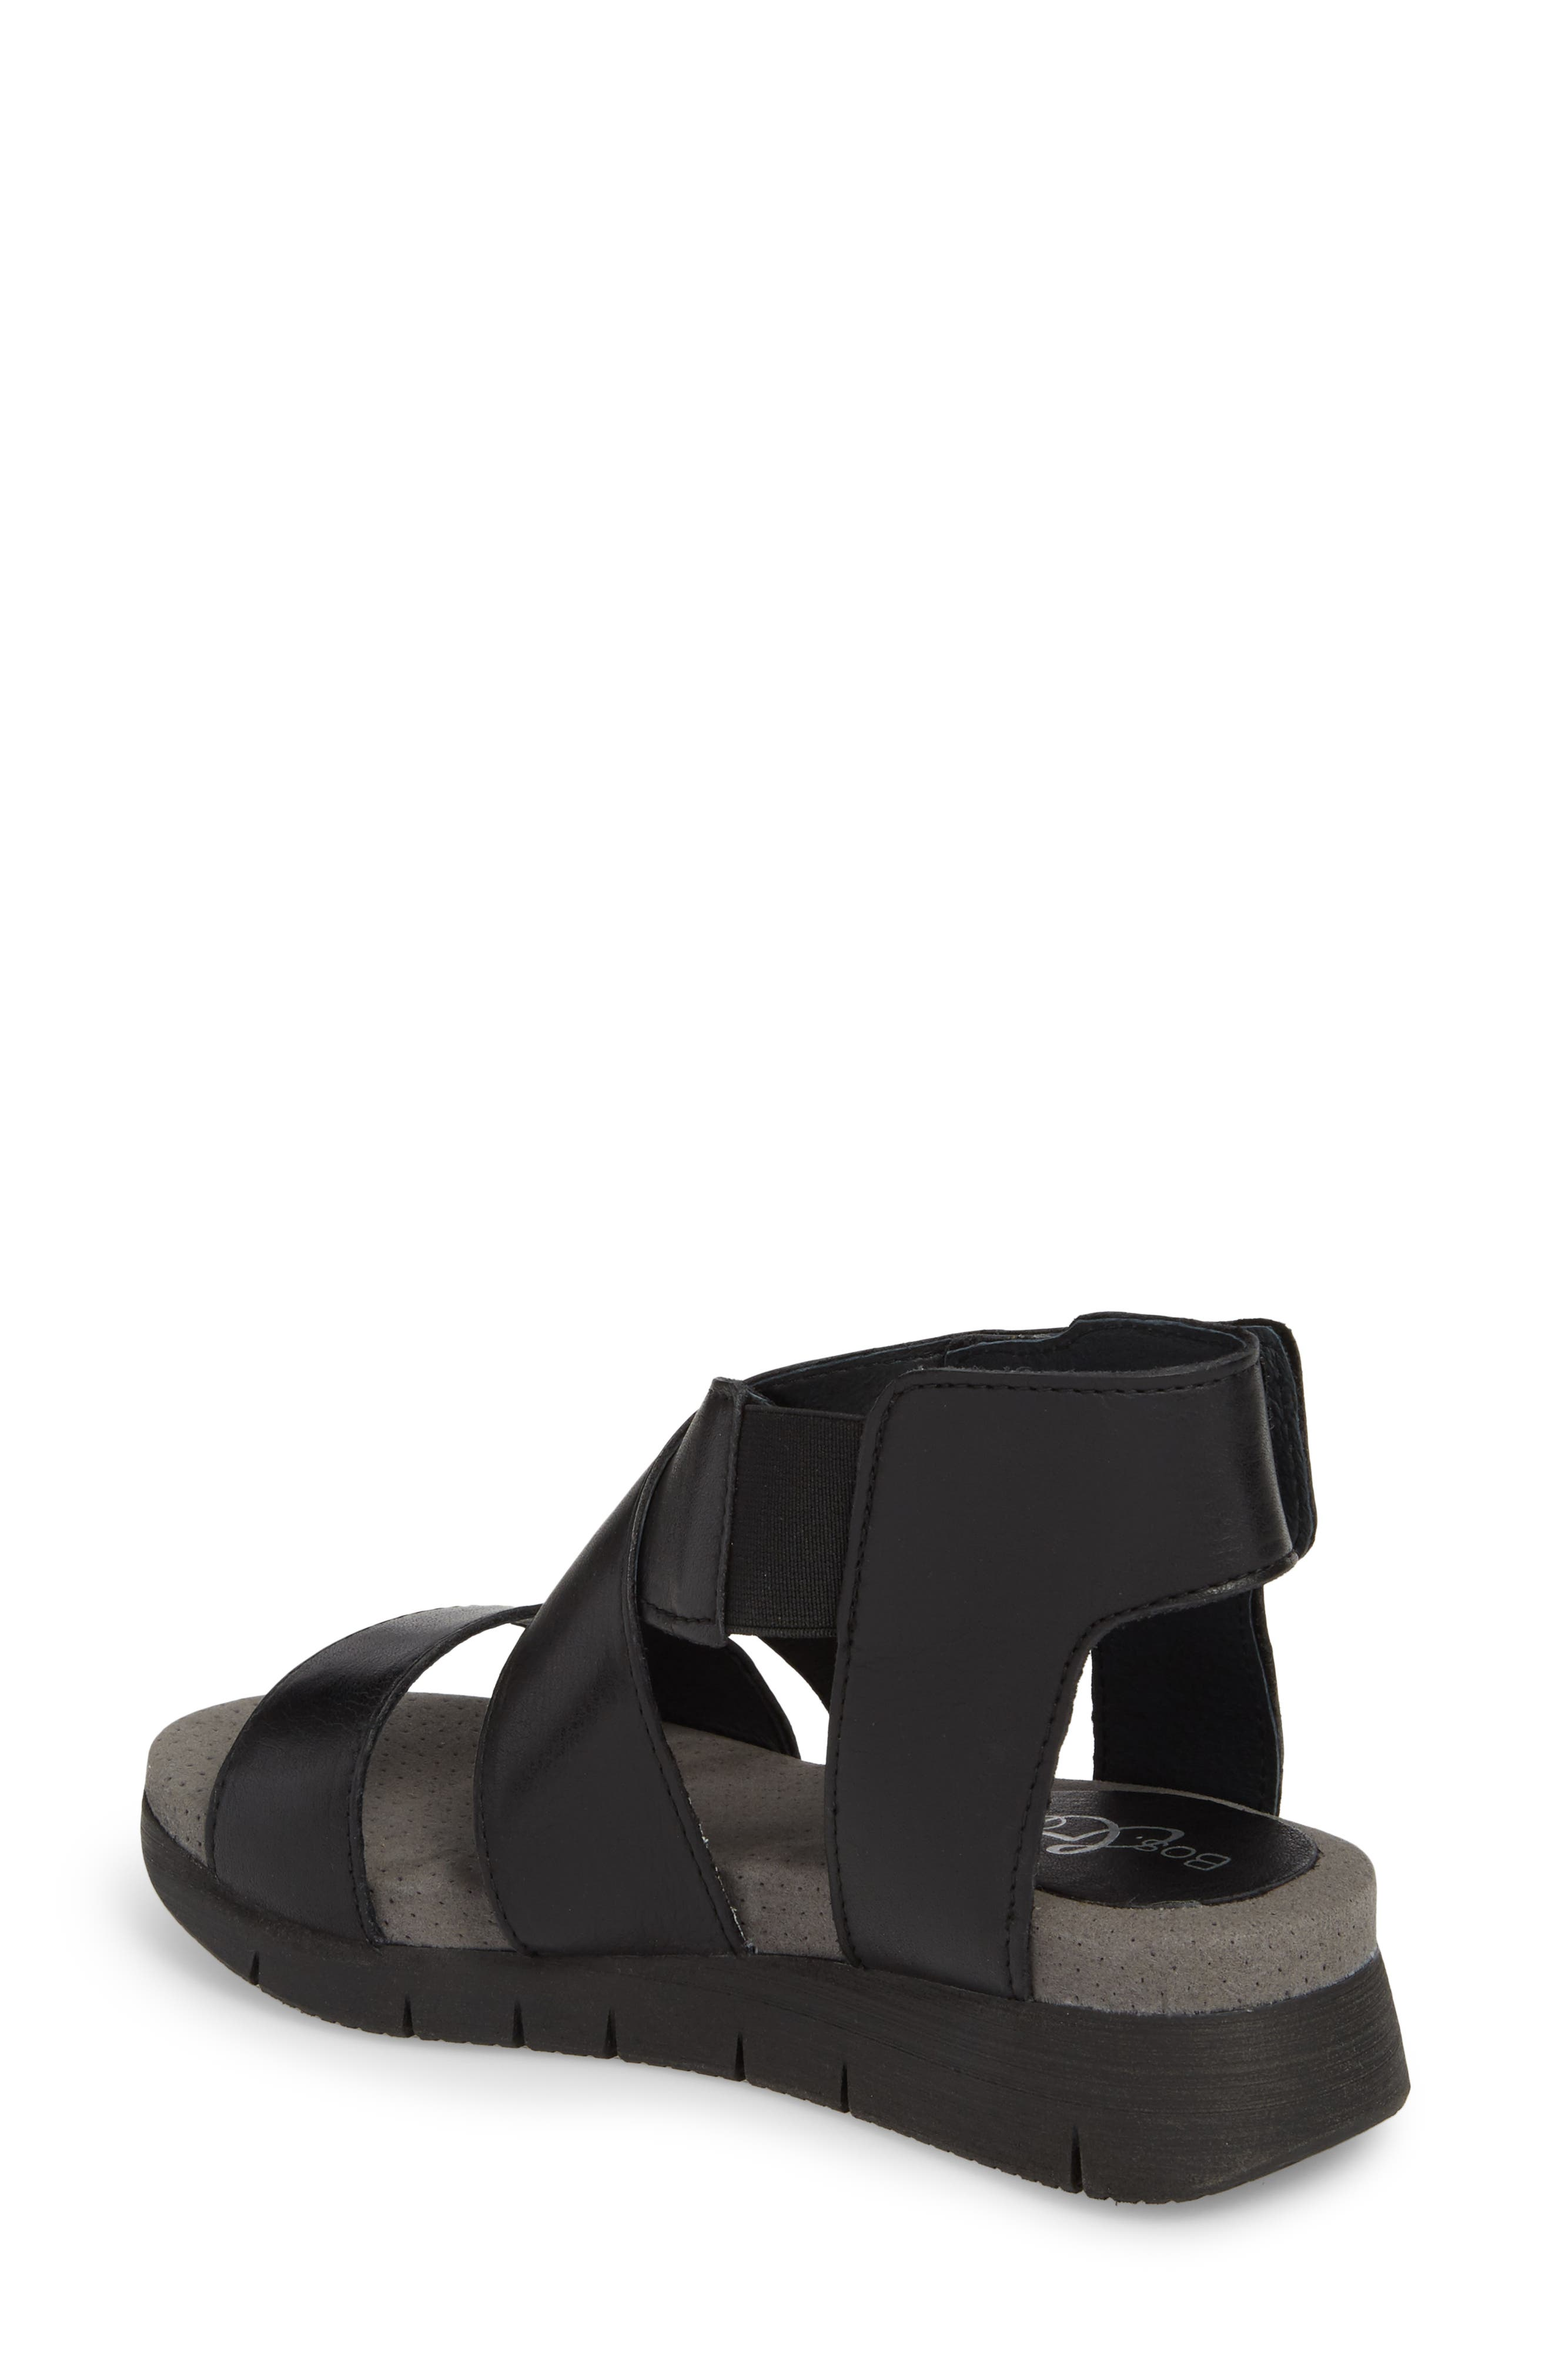 BOS. & CO., Piper Wedge Sandal, Alternate thumbnail 2, color, BLACK SAUVAGE LEATHER